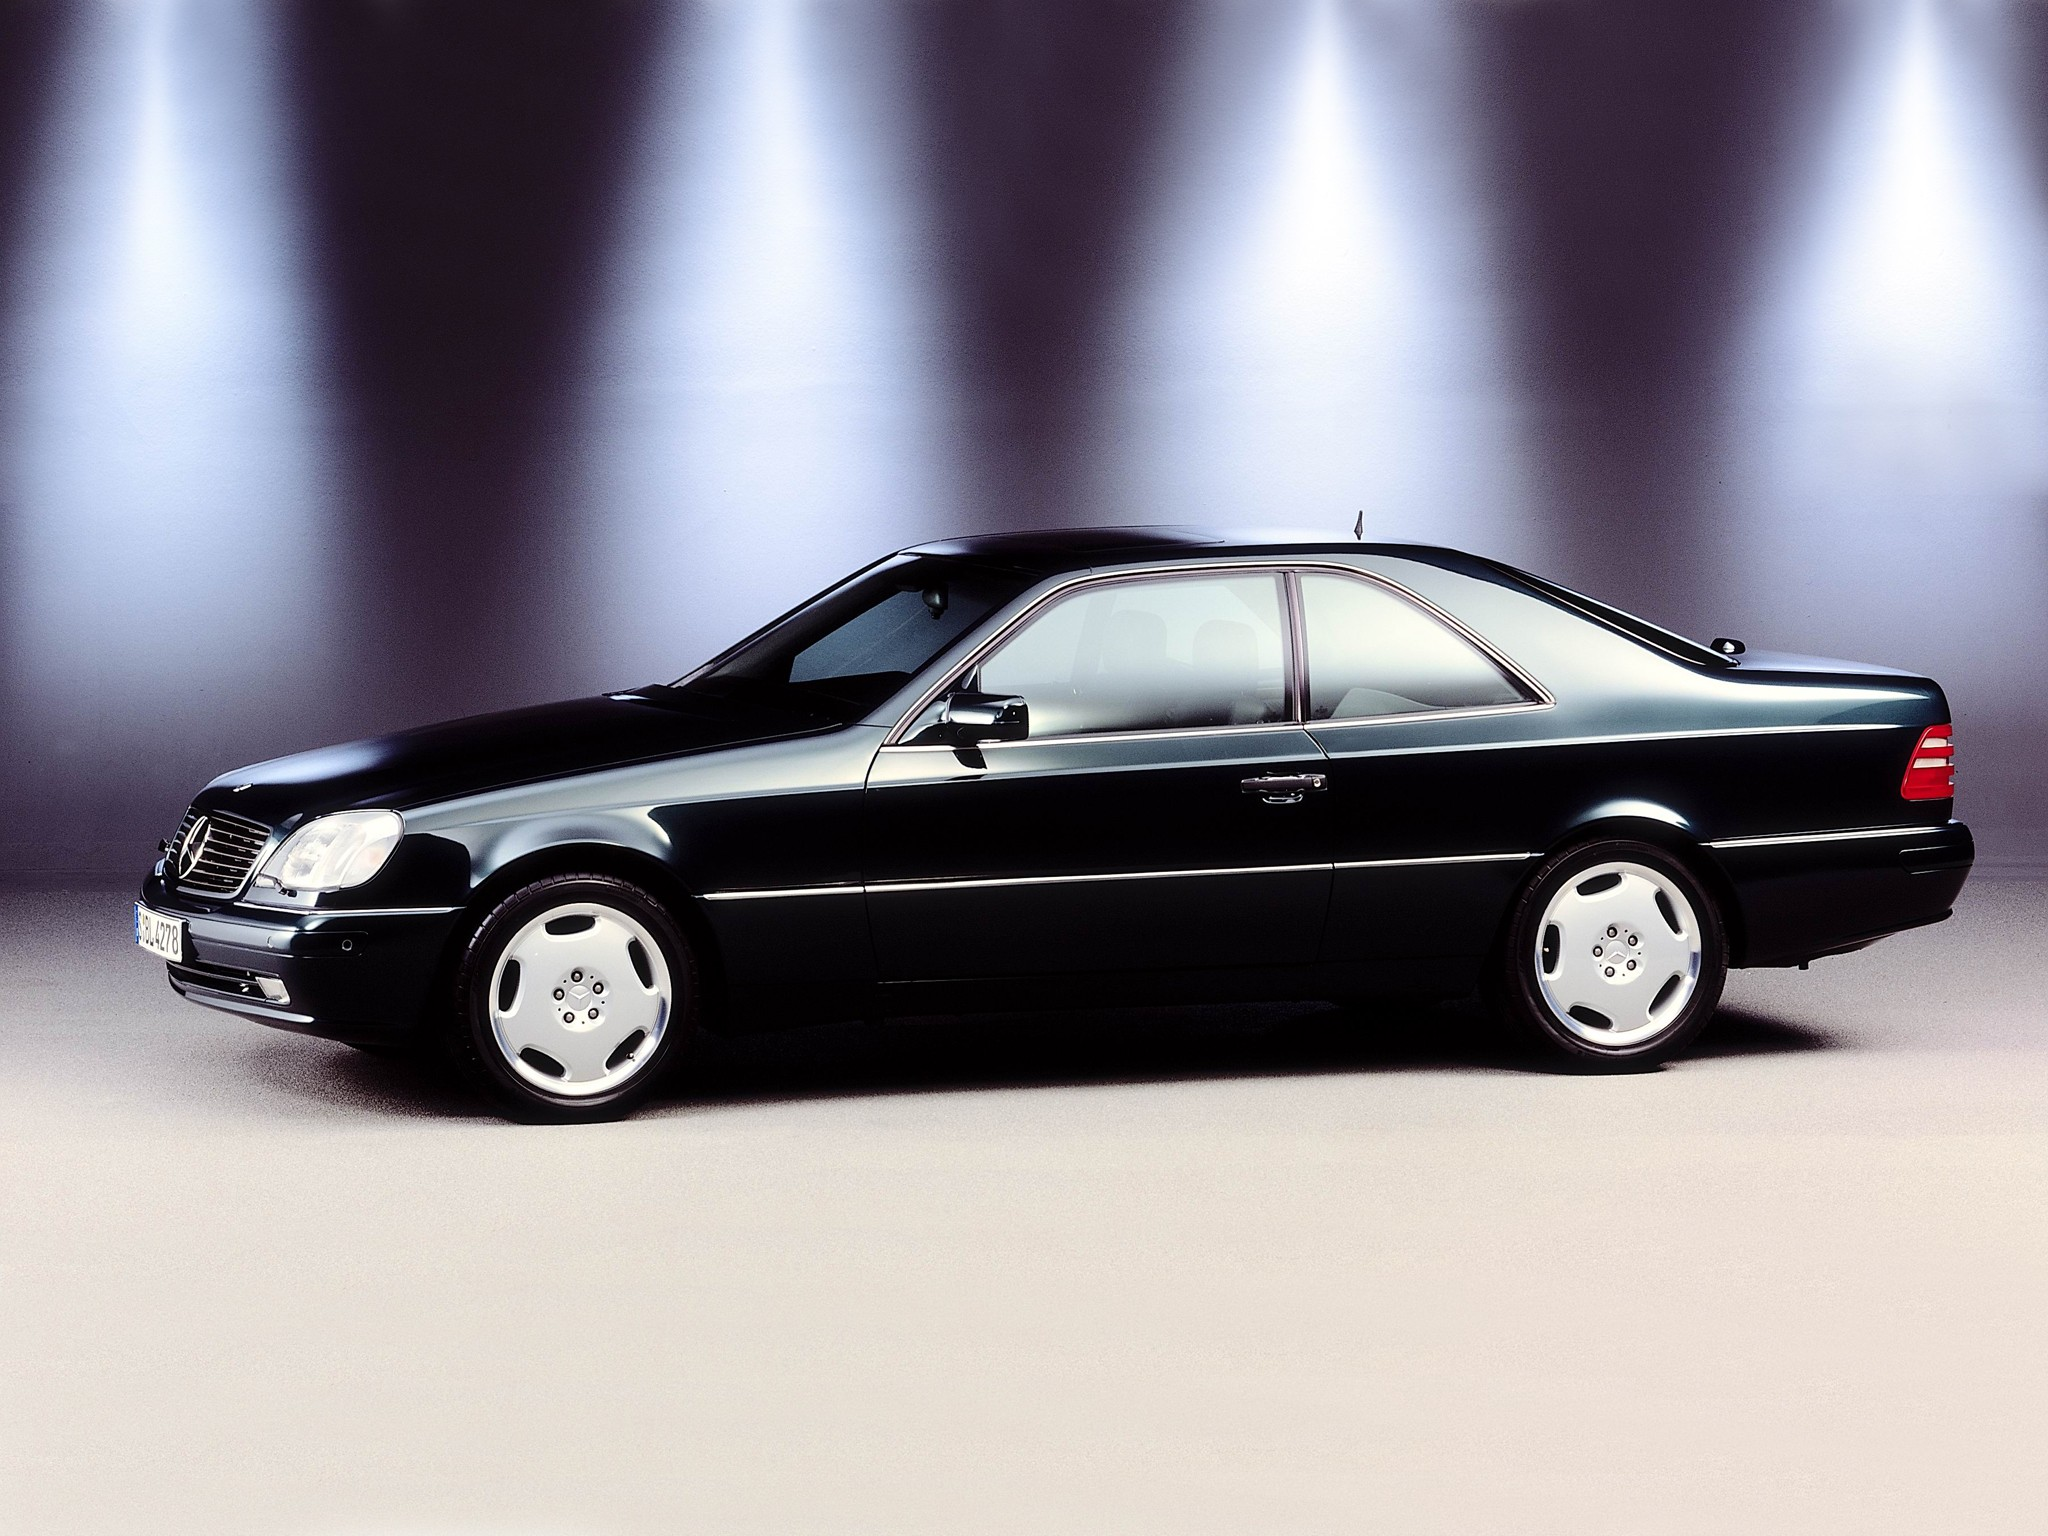 mercedes benz cl coupe (c140) specs & photos - 1996, 1997, 1998